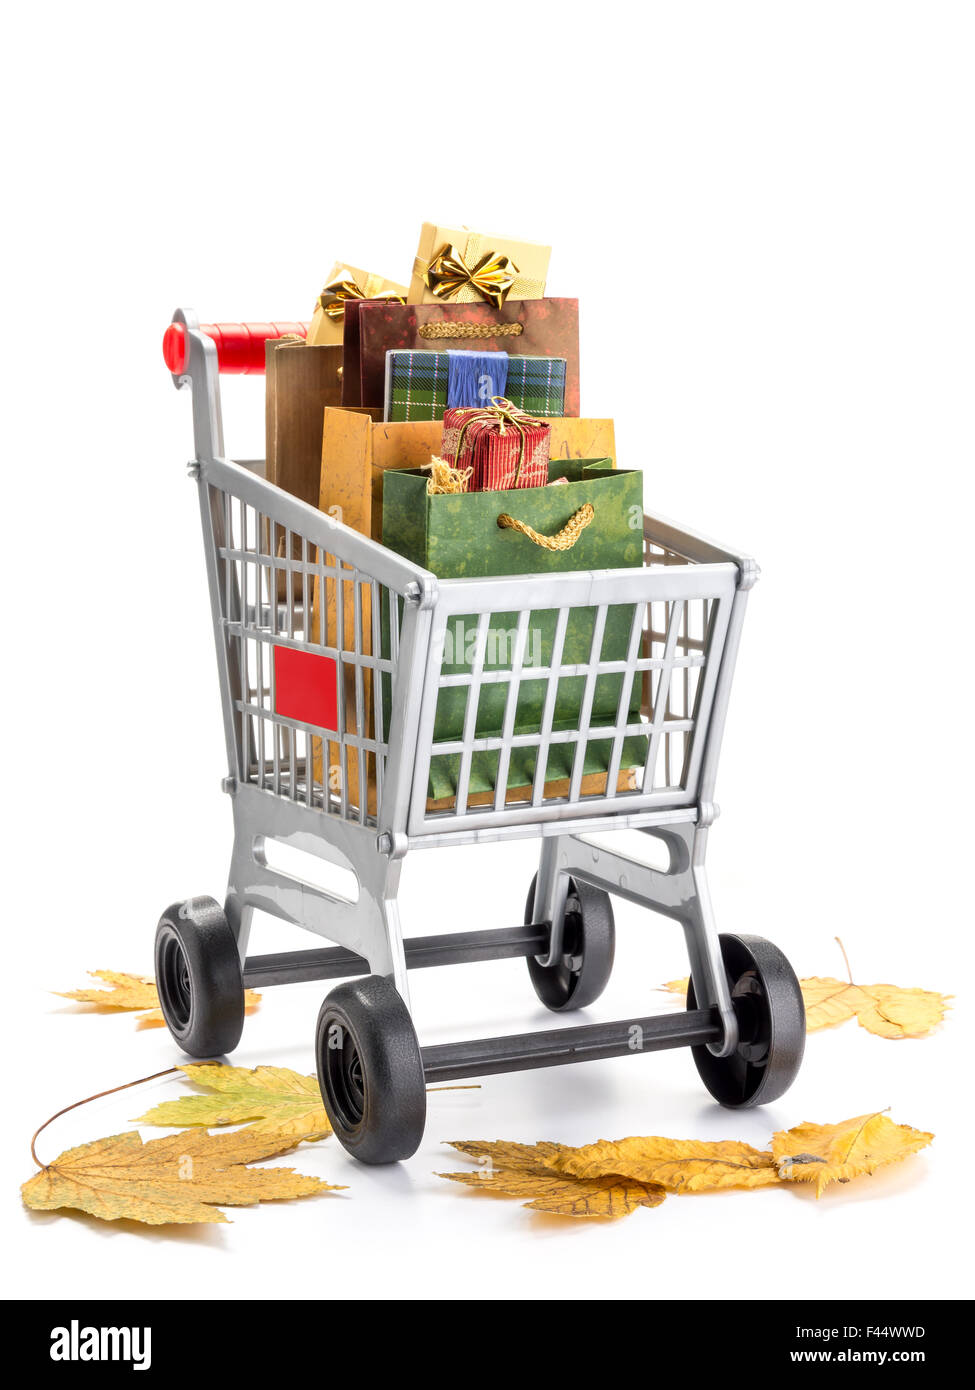 Shopping cart full of bags filled with shopping items with